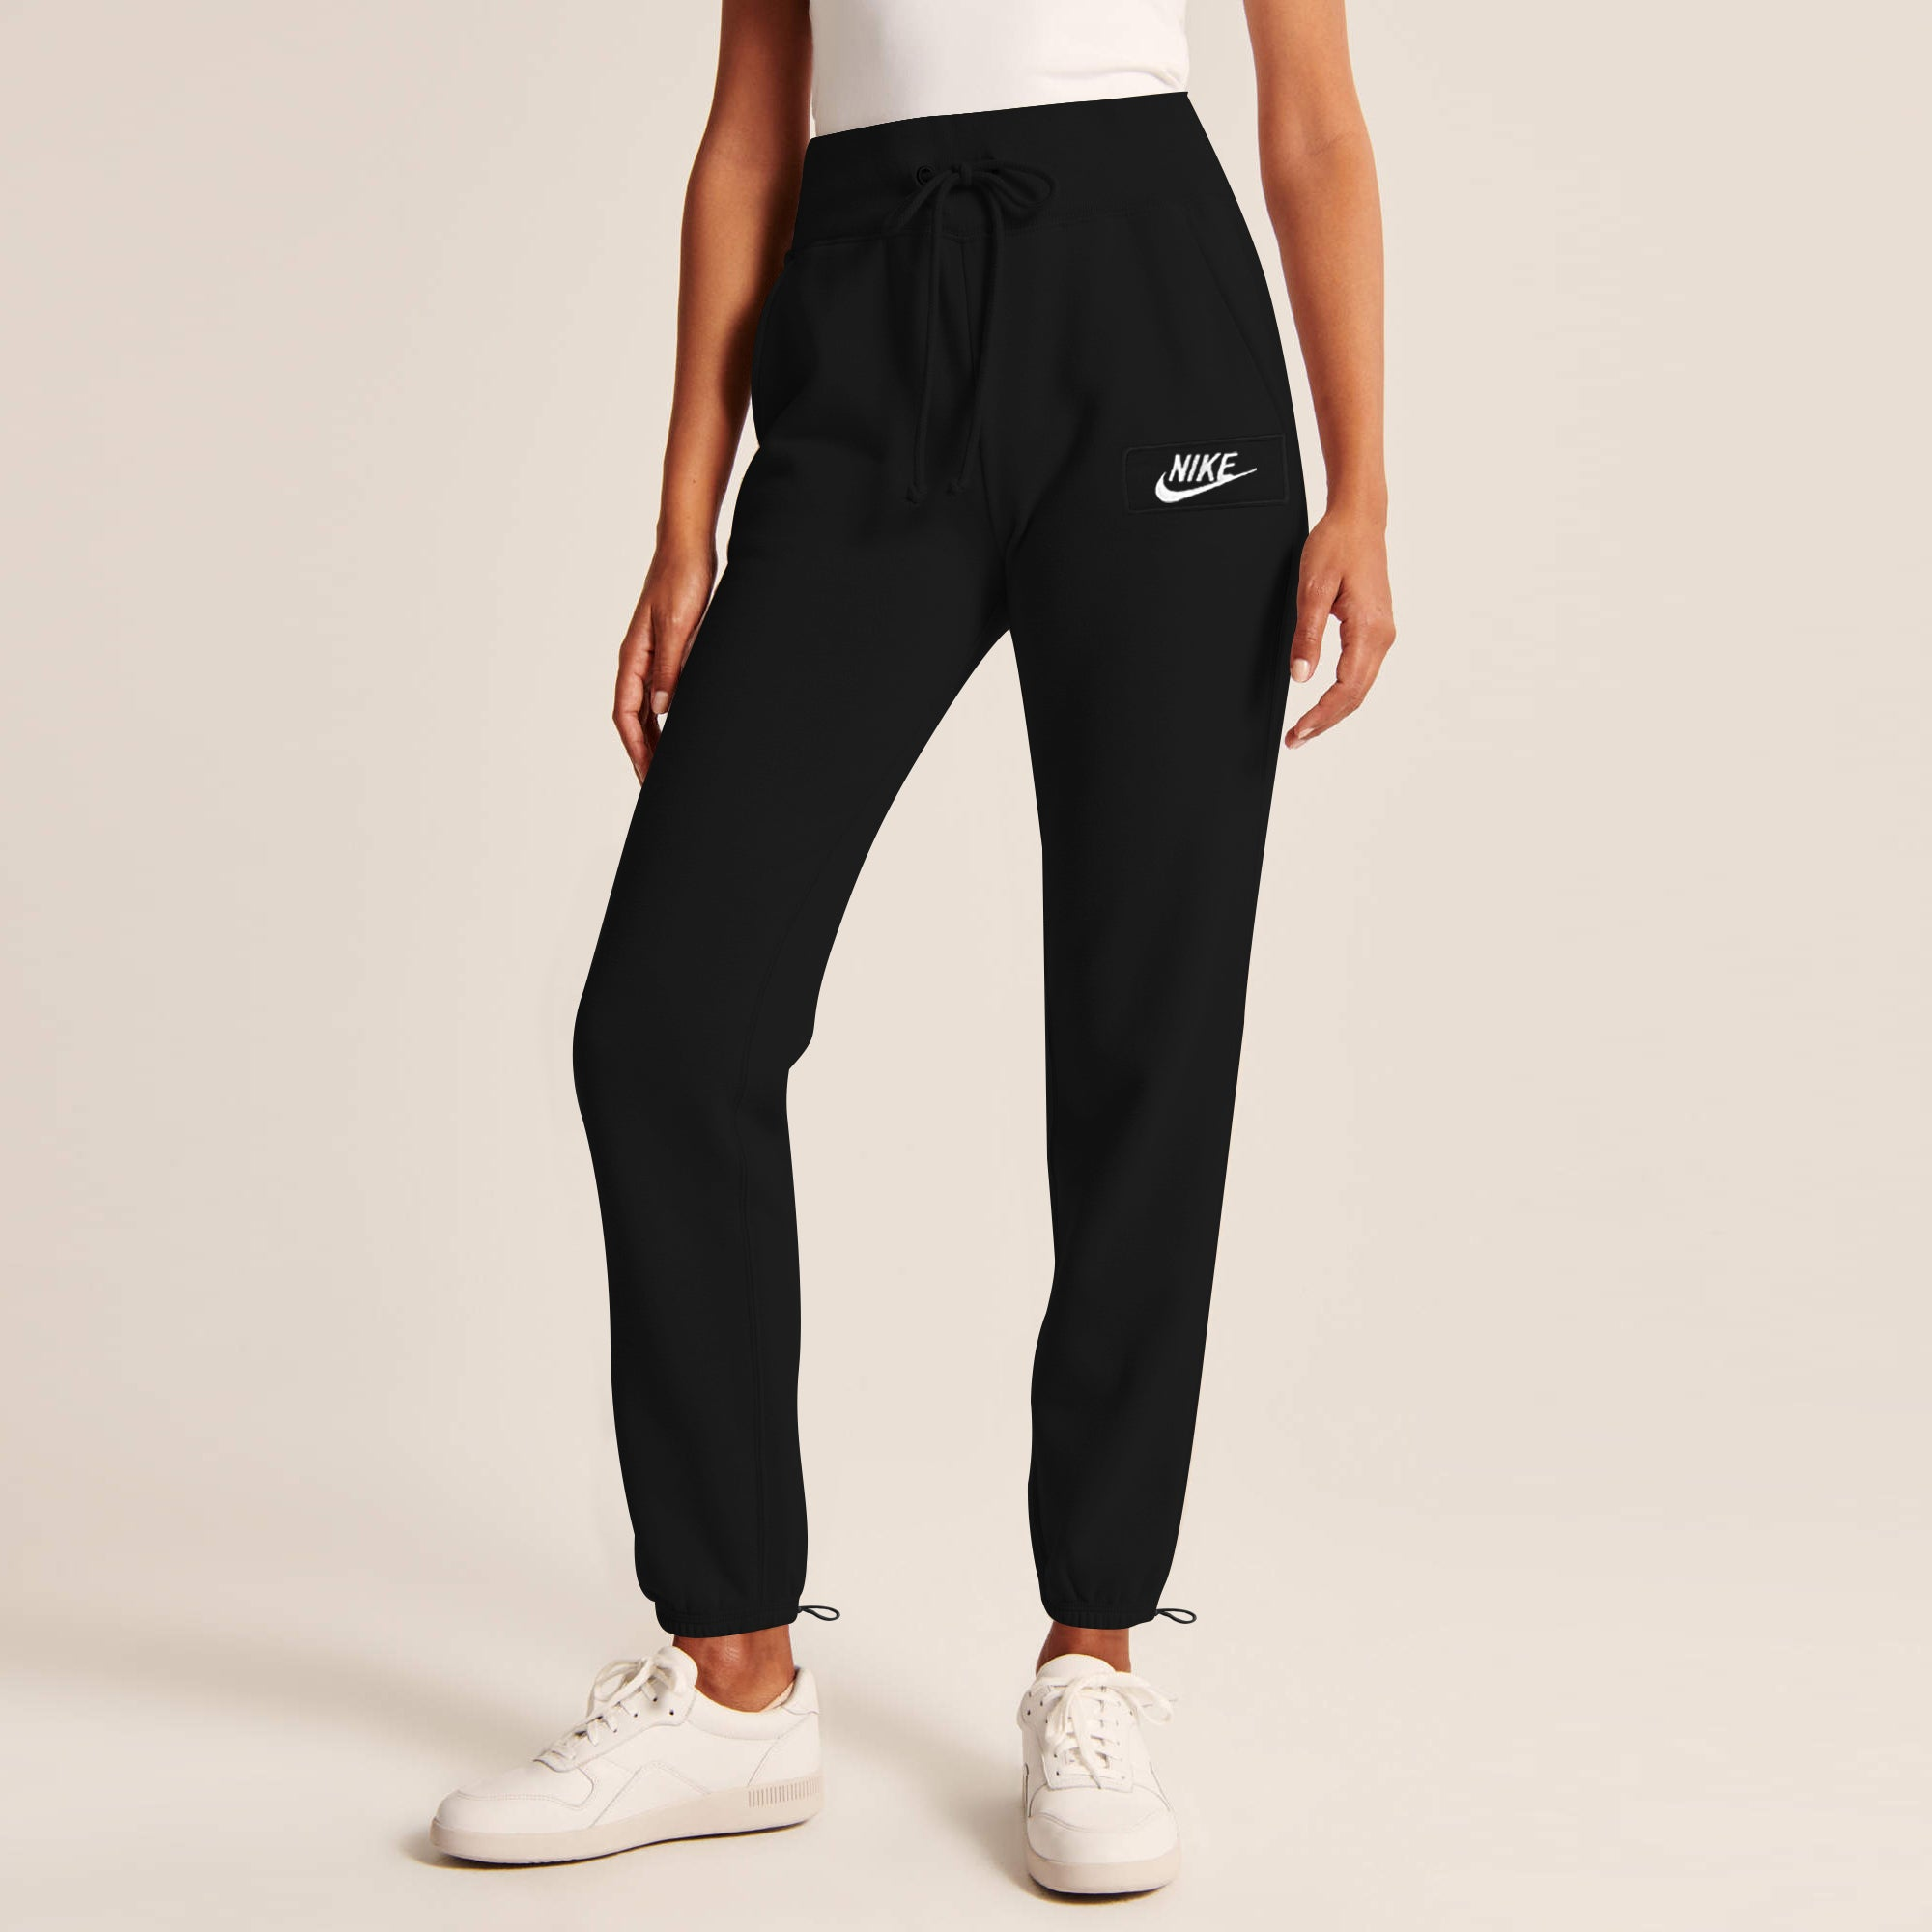 NK Fleece Gathering Bottom Trouser For Ladies-Black With White Embroidery-SP4245